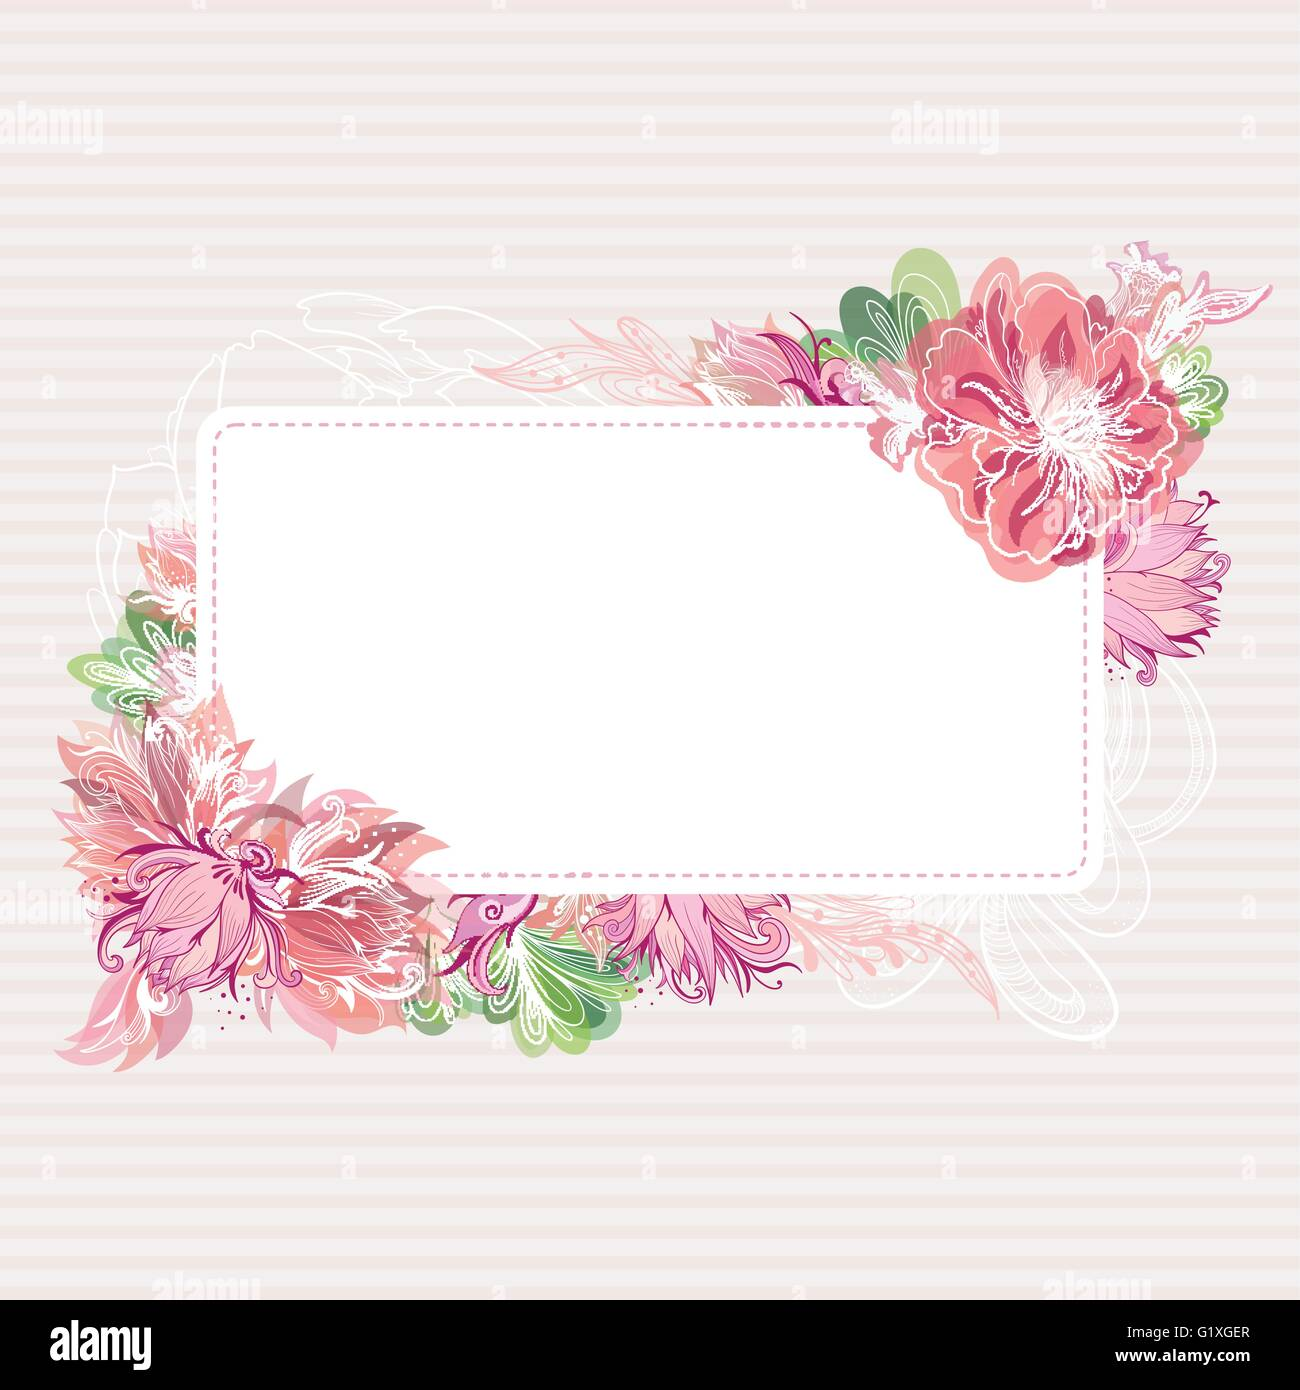 Beautiful Card Template With Shabby Chic Peony Lily And Lotus Flowers Watercolor Transparent Effect For Greeting